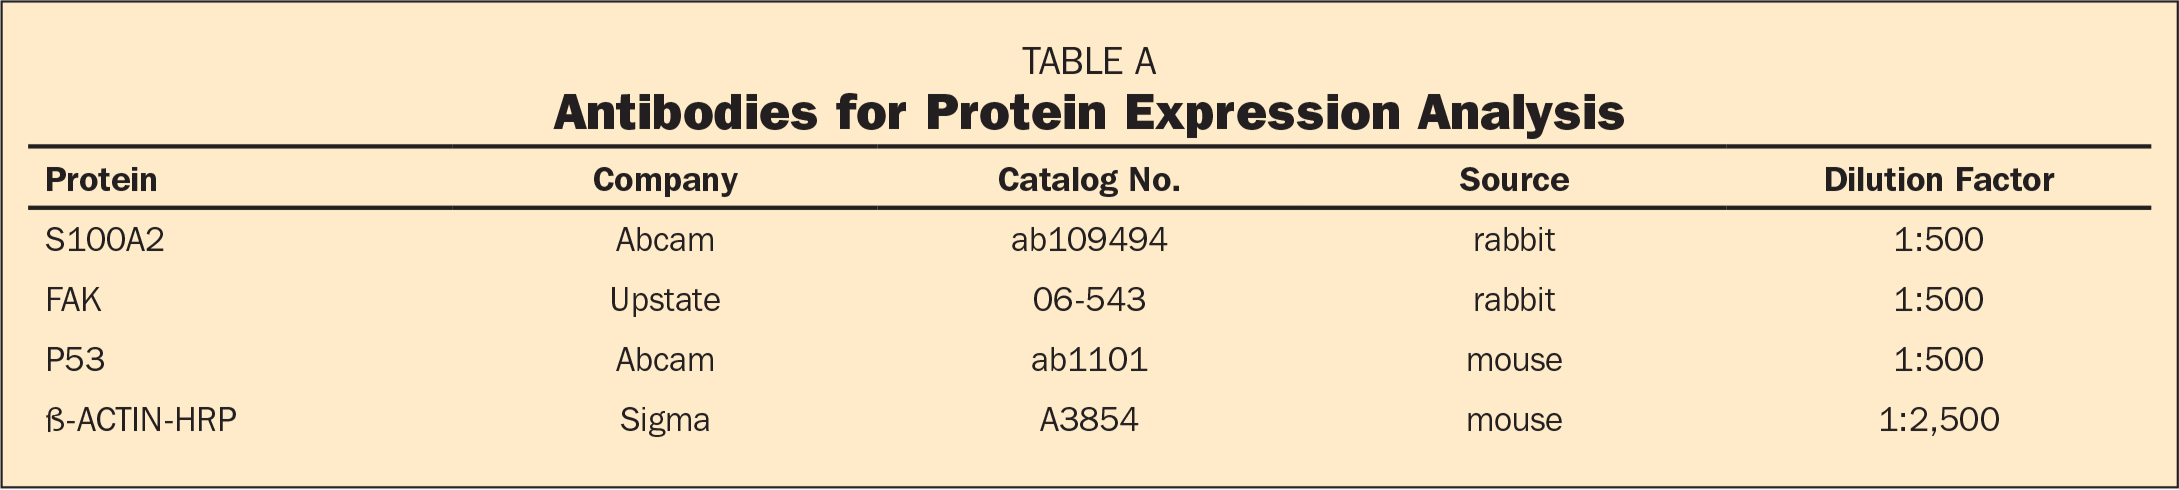 Antibodies for Protein Expression Analysis